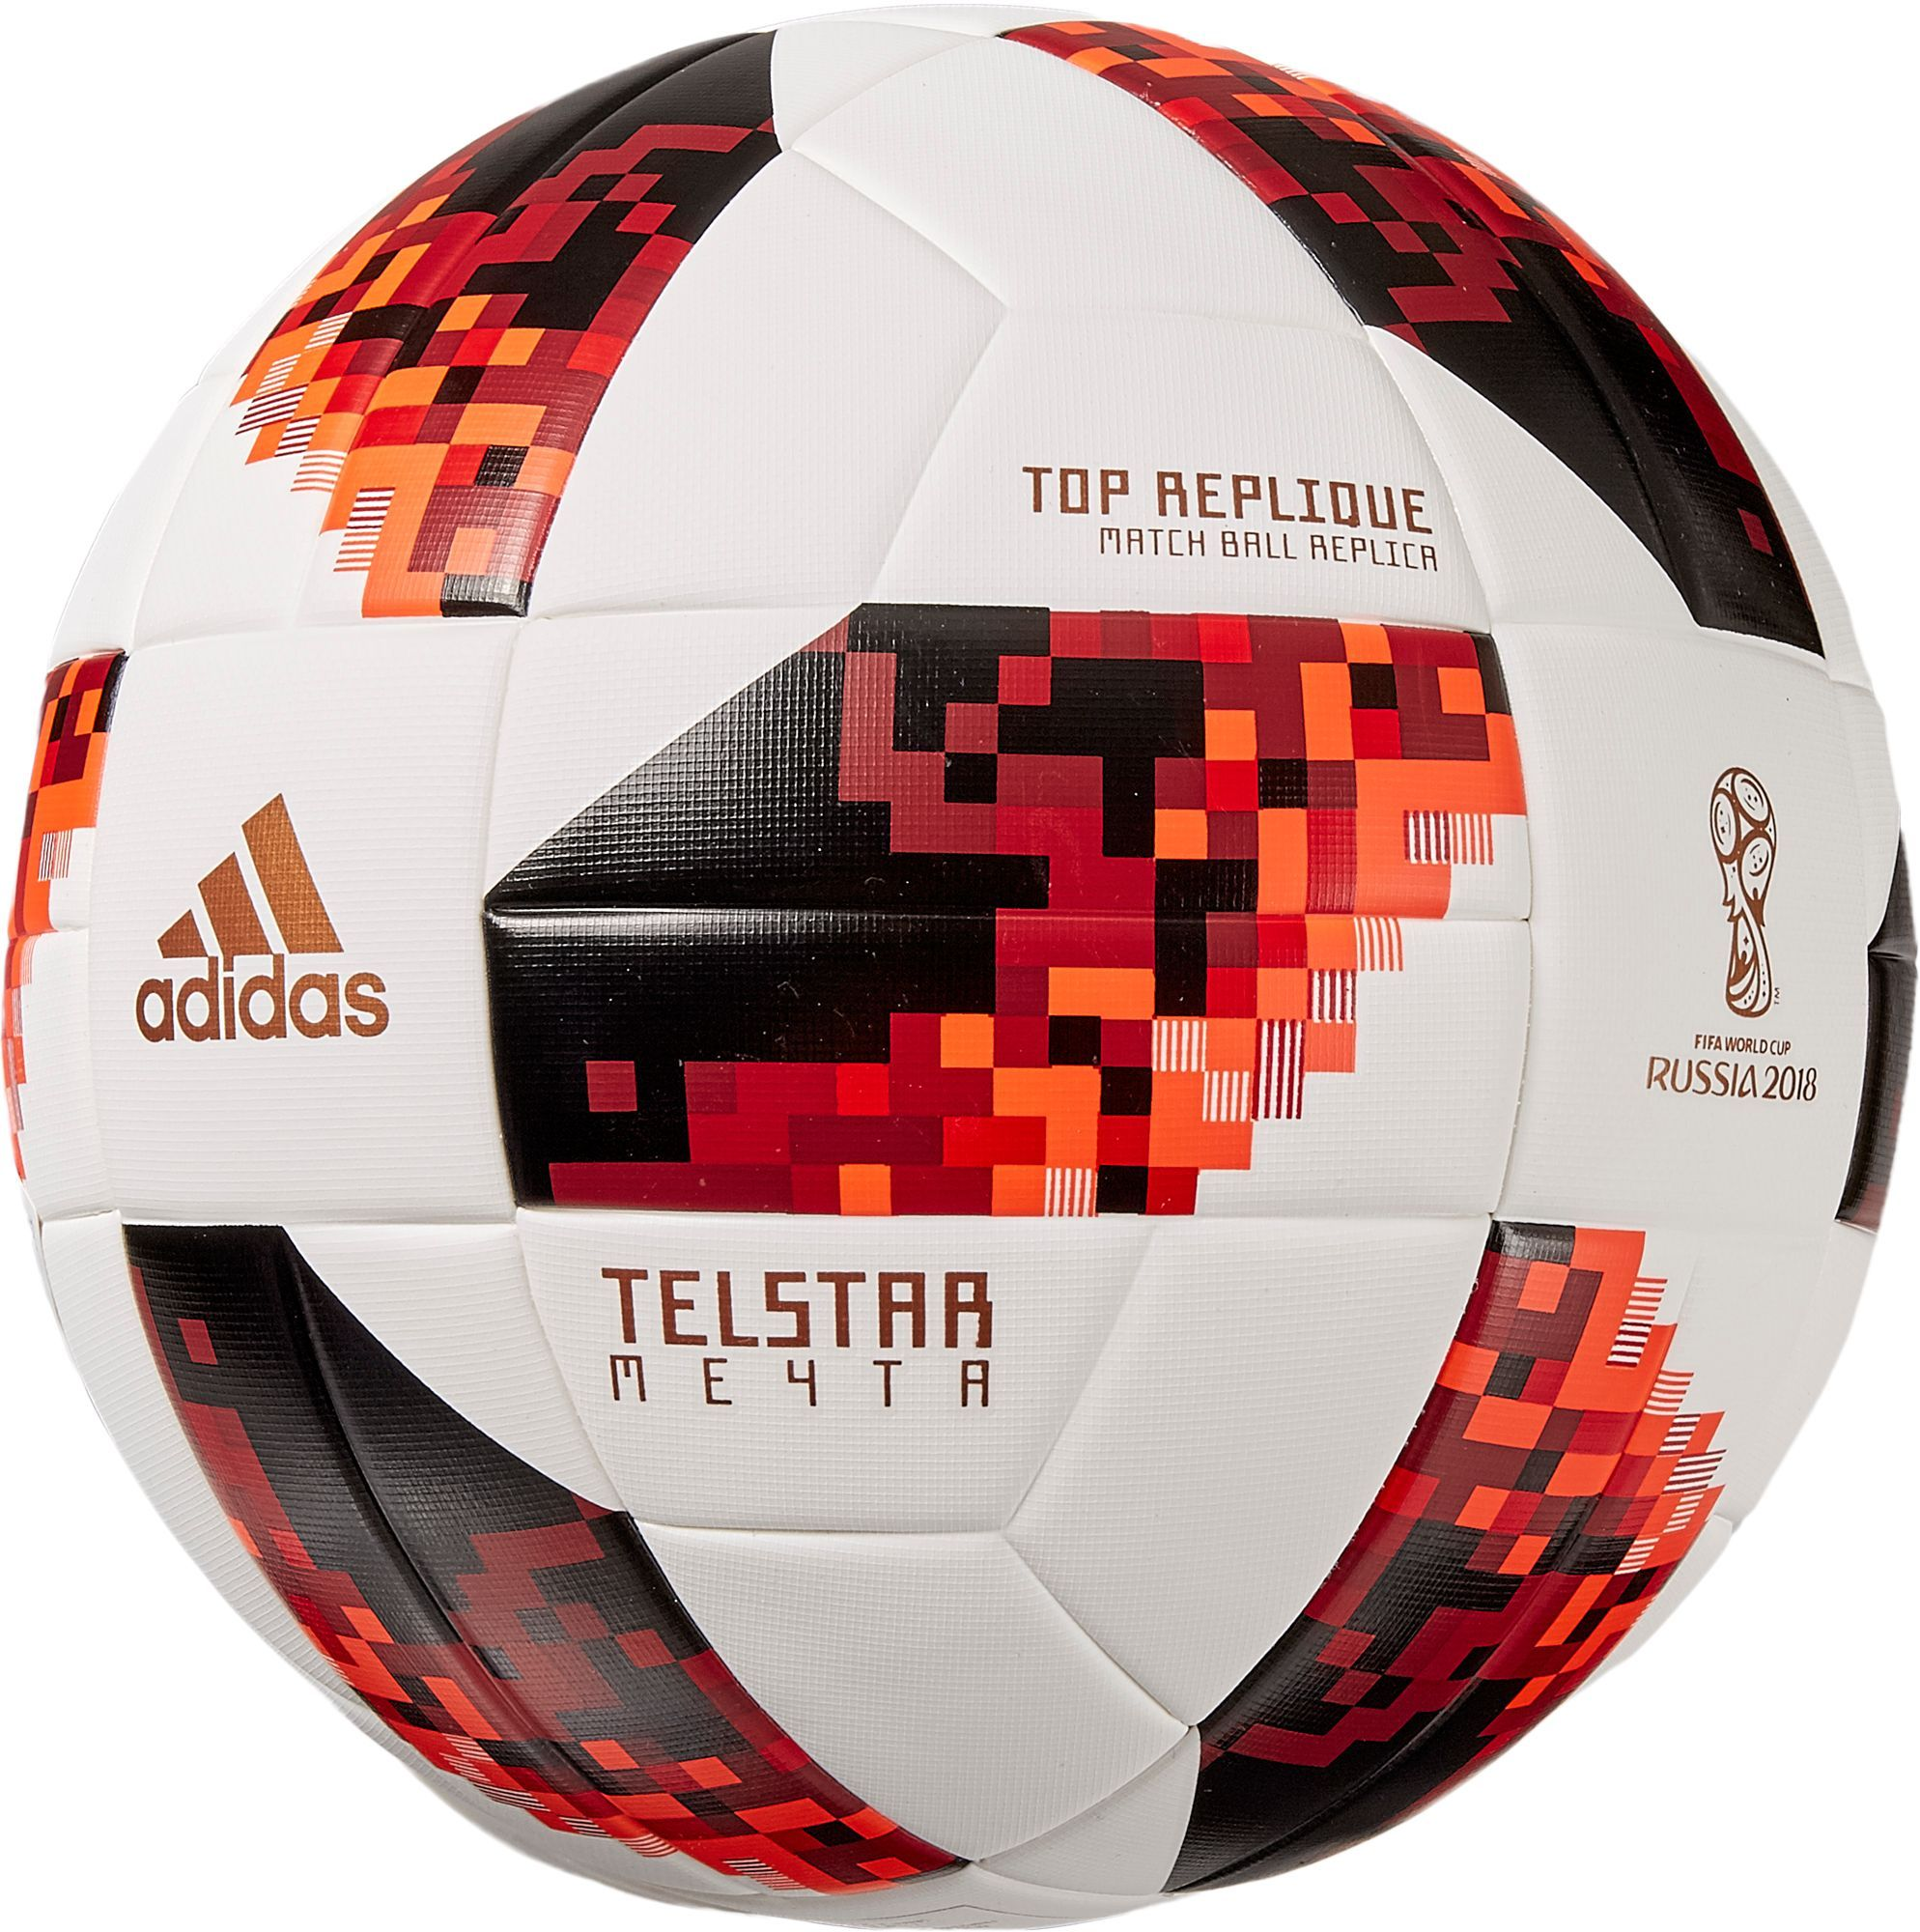 adidas 2018 Fifa World Cup Telstar Mechta Knockout Stage Top Replique  Soccer Ball d5f0f152f2120